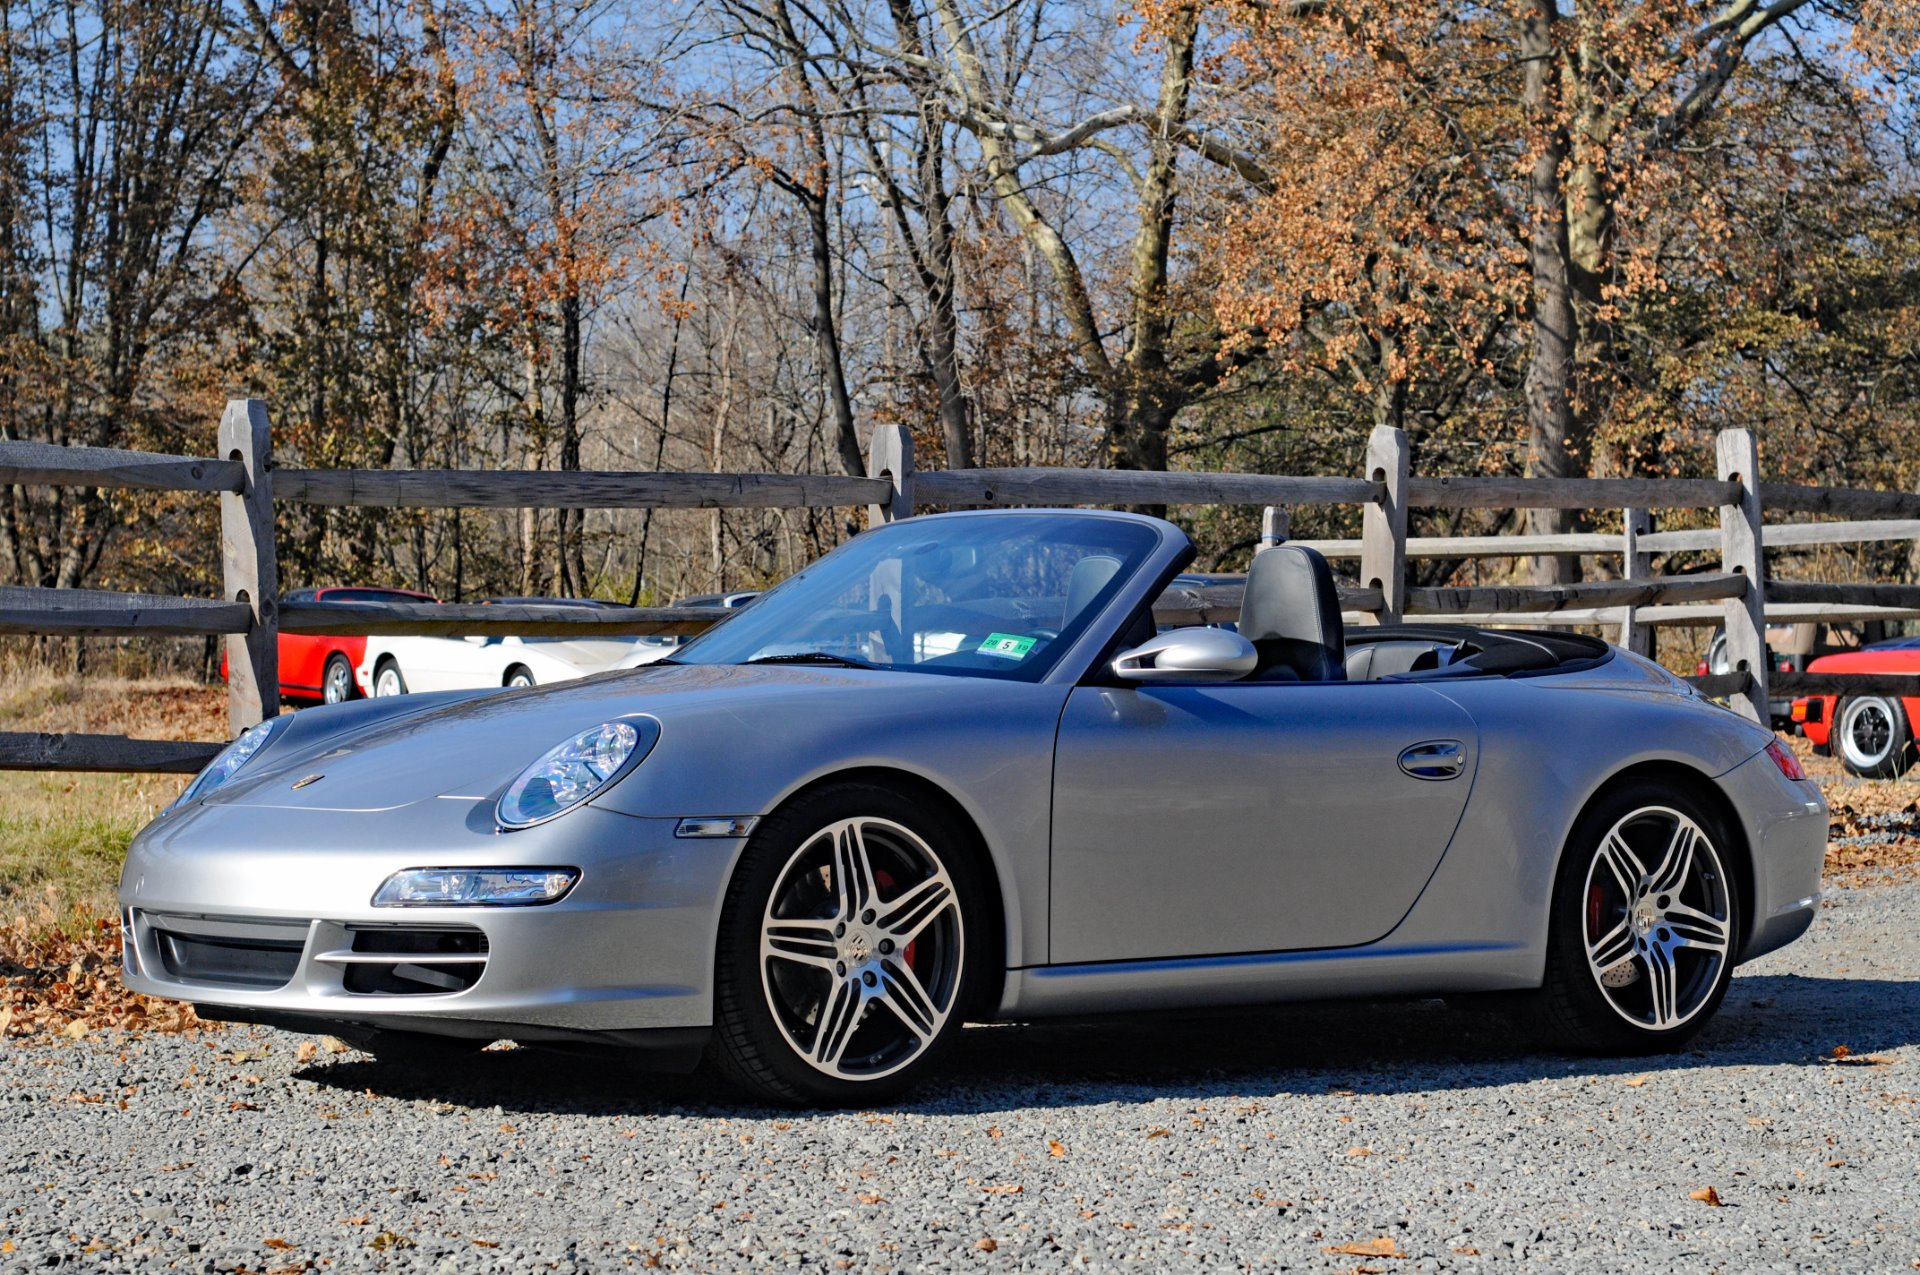 2008 porsche 911 carrera s cabriolet carrera s stock 2385 for sale near peapack nj nj. Black Bedroom Furniture Sets. Home Design Ideas